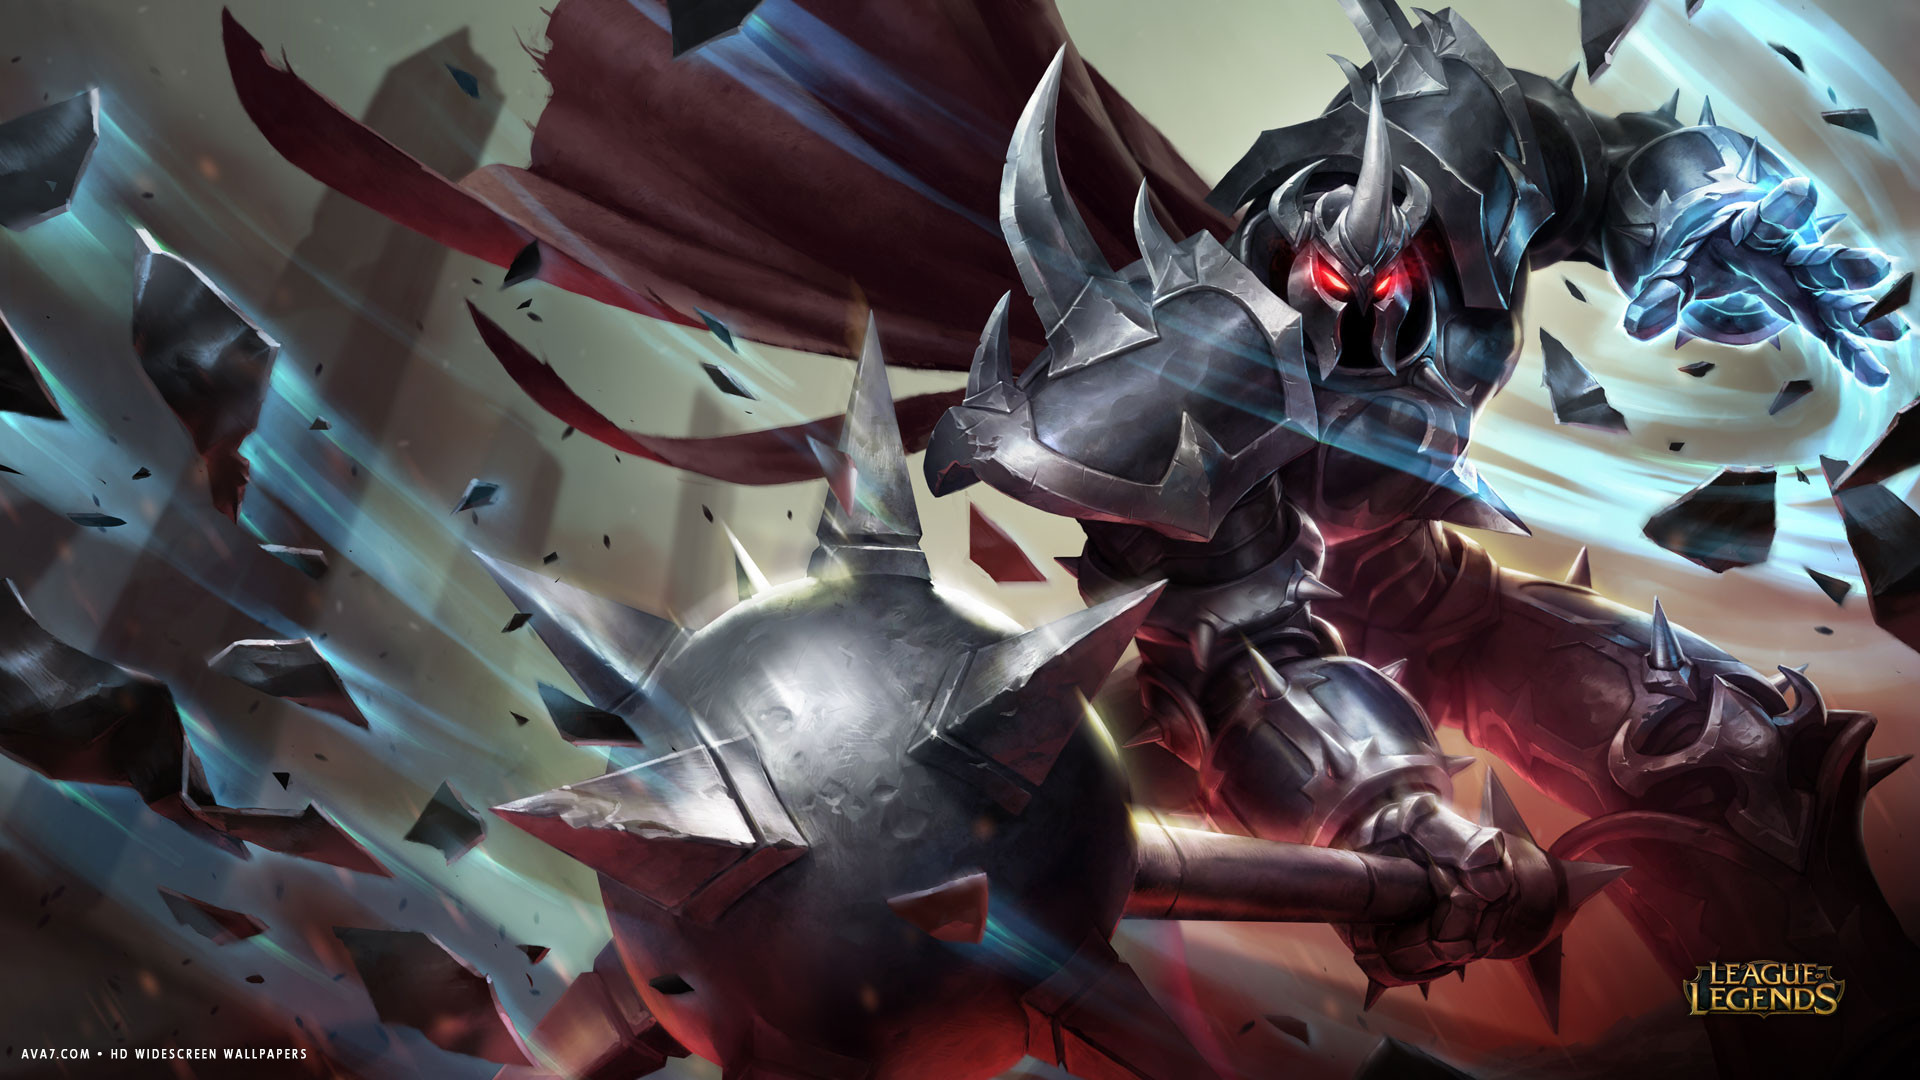 league of legends game lol mordekaiser big monster iron armor hd widescreen wallpaper